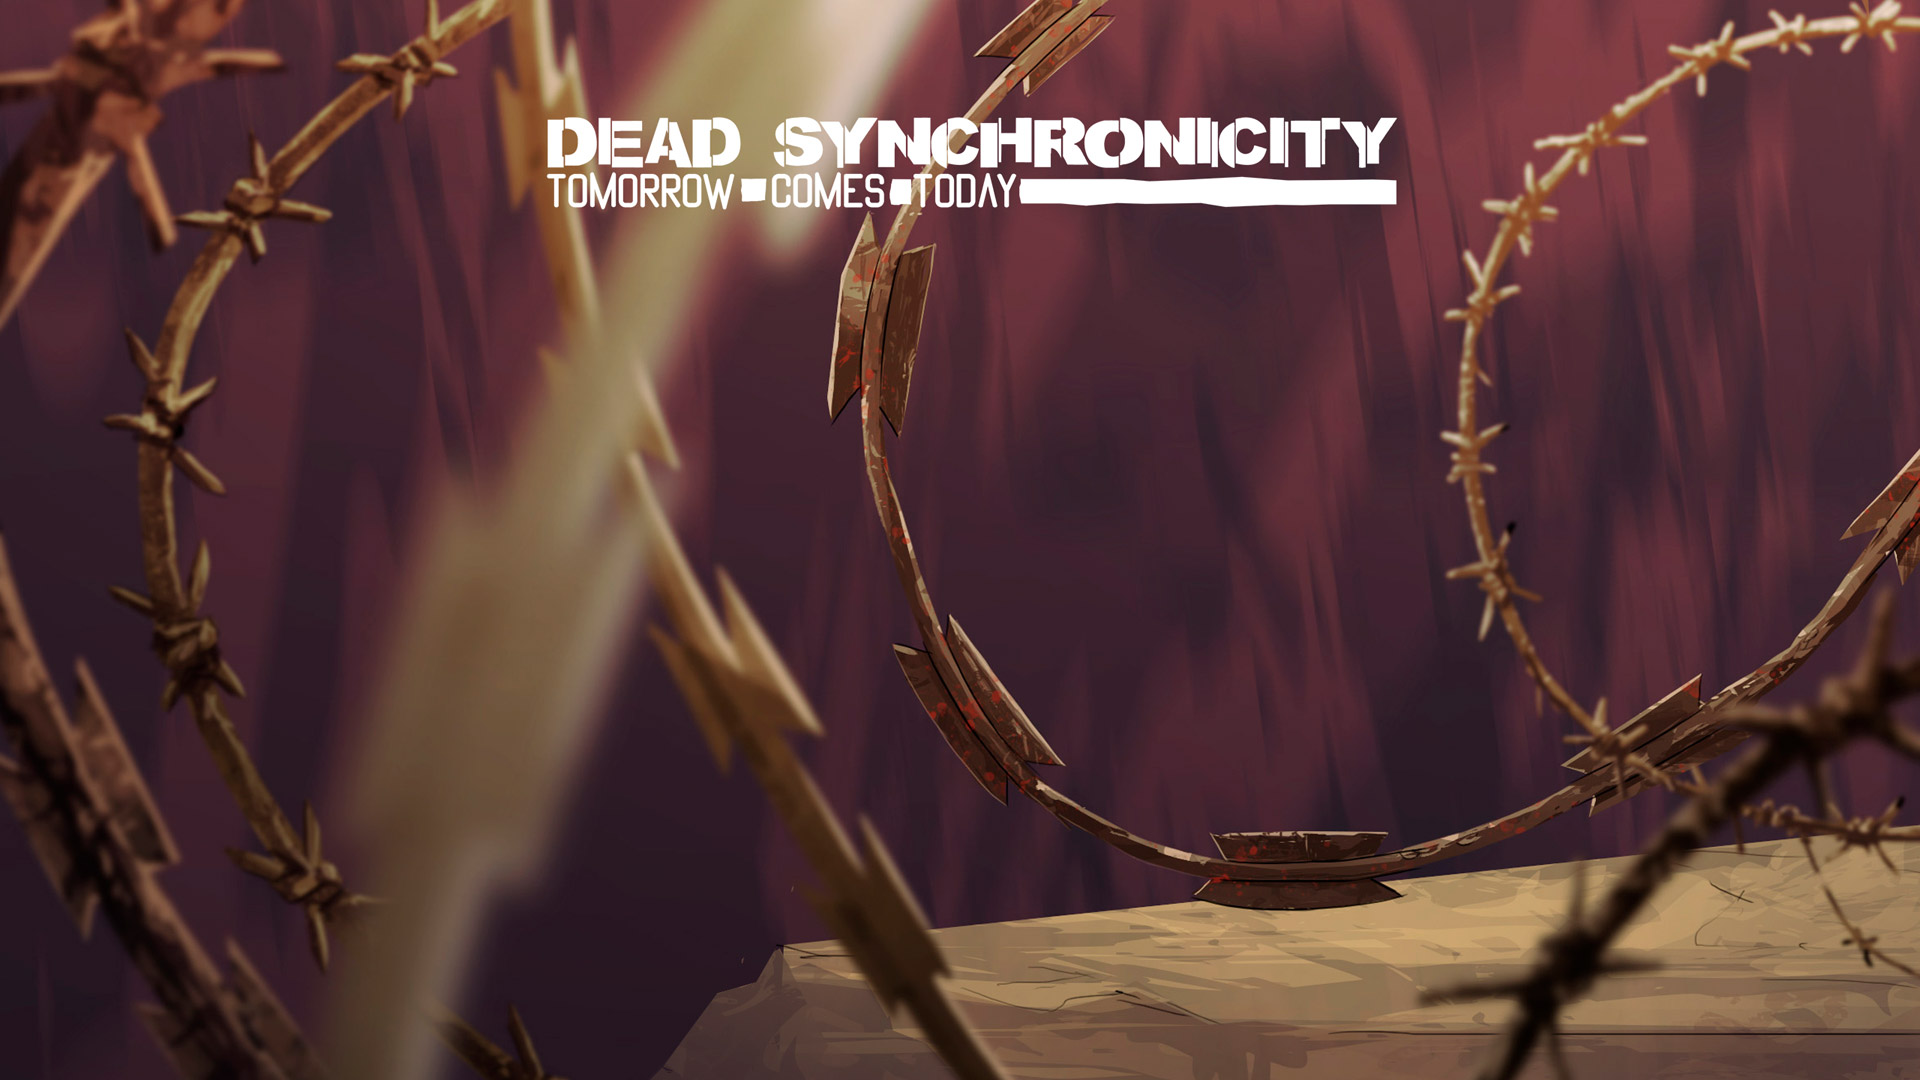 Free Dead Synchronicity: Tomorrow Comes Today Wallpaper in 1920x1080